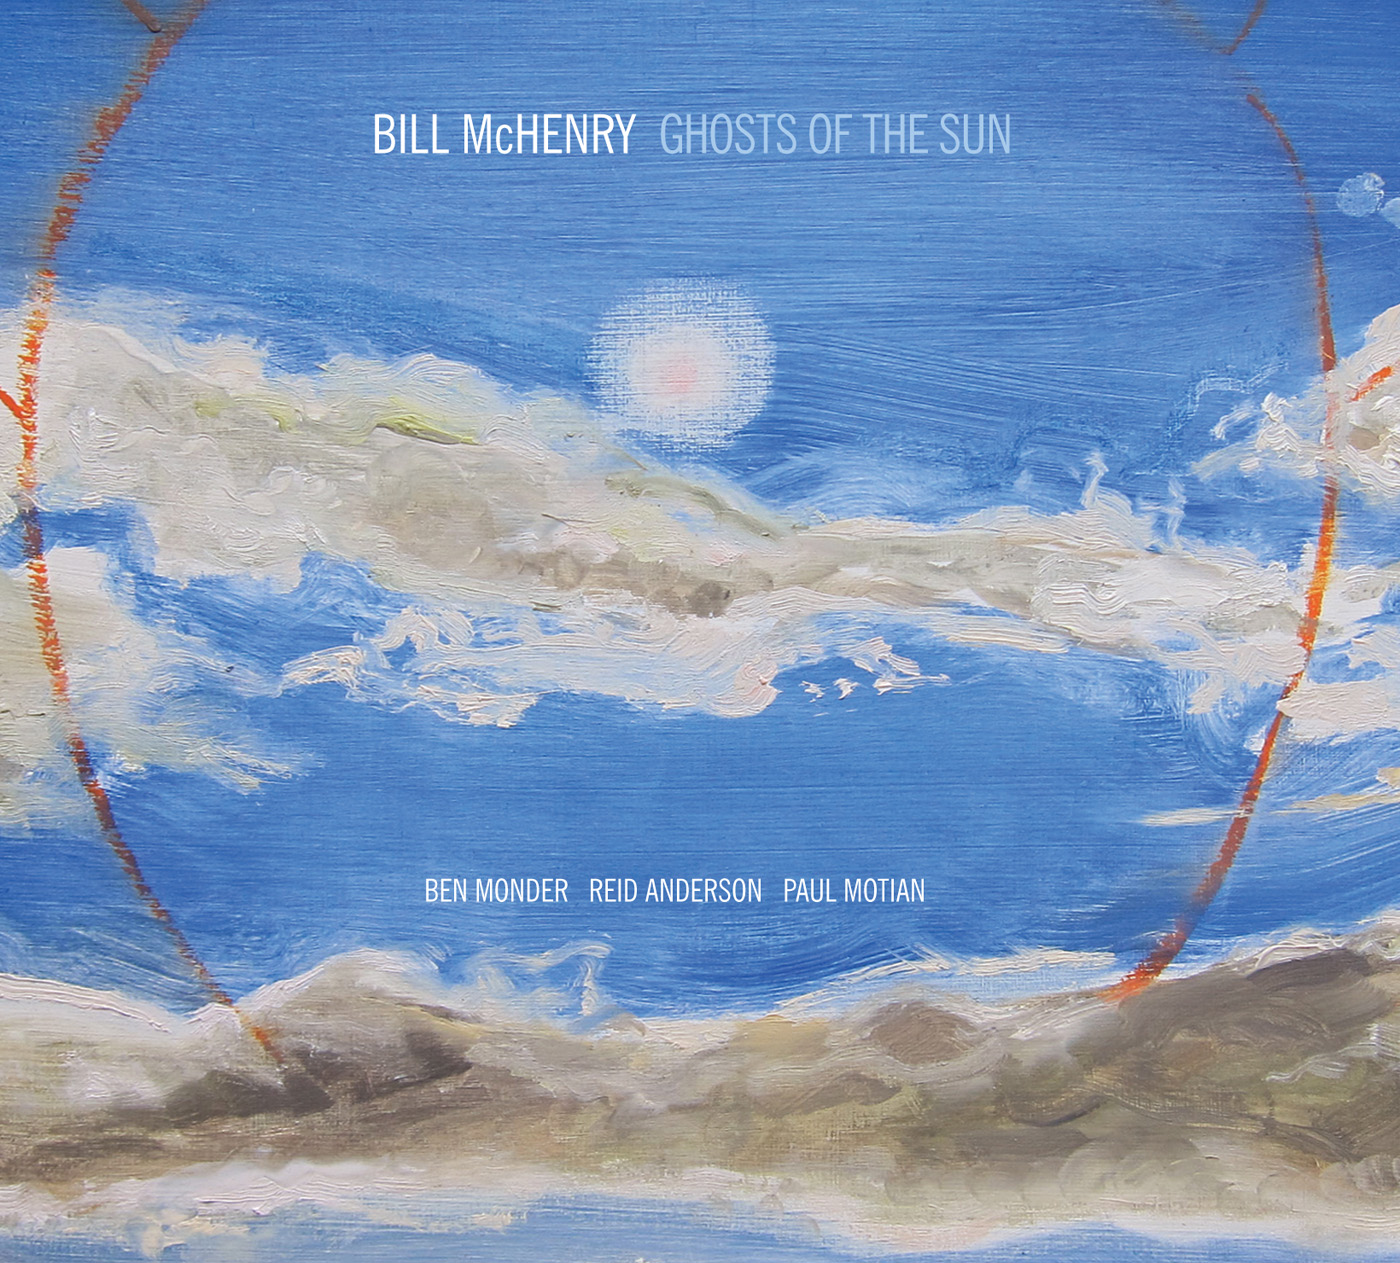 Ghosts of the Sun by Bill McHenry cover